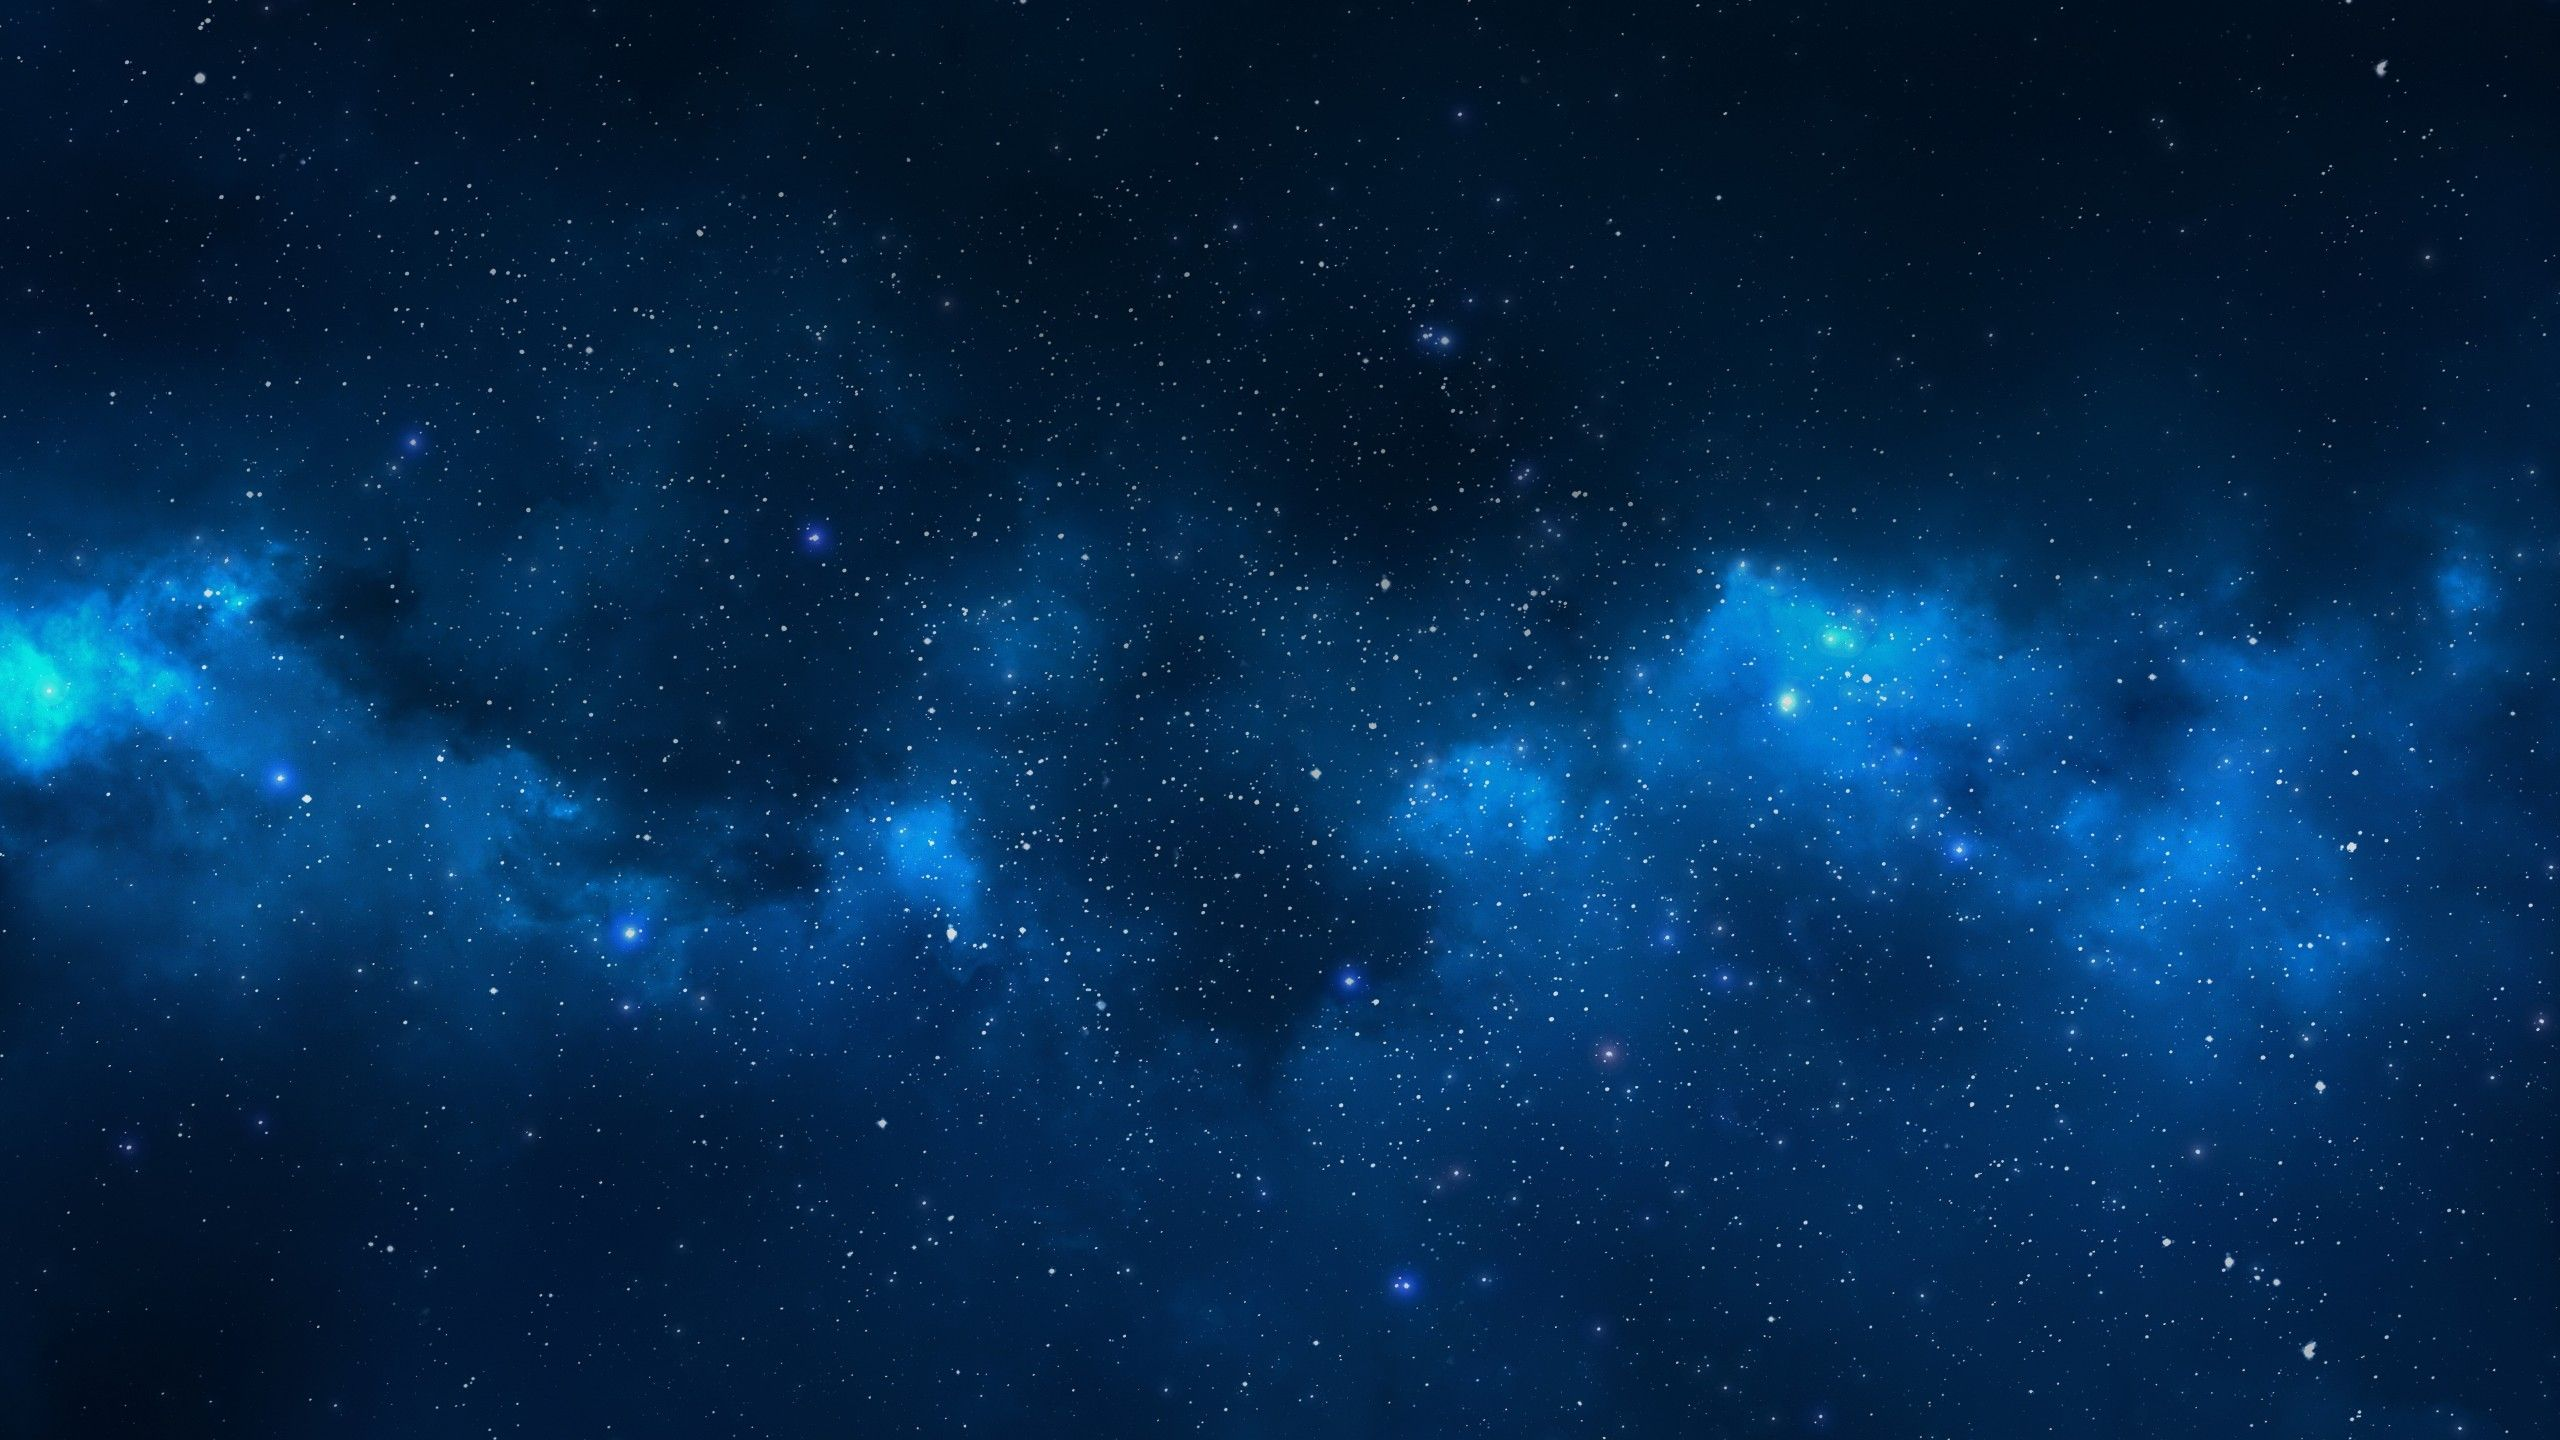 Free Download Blue Galaxy Stars Wallpaper Page 2 Pics About Space Gh 2560x1440 For Your Desktop Mobile Tablet Explore 36 Wallpaper Galaxy Aesthetic Wallpaper Galaxy Aesthetic Aesthetic Wallpaper Aesthetic Wallpapers